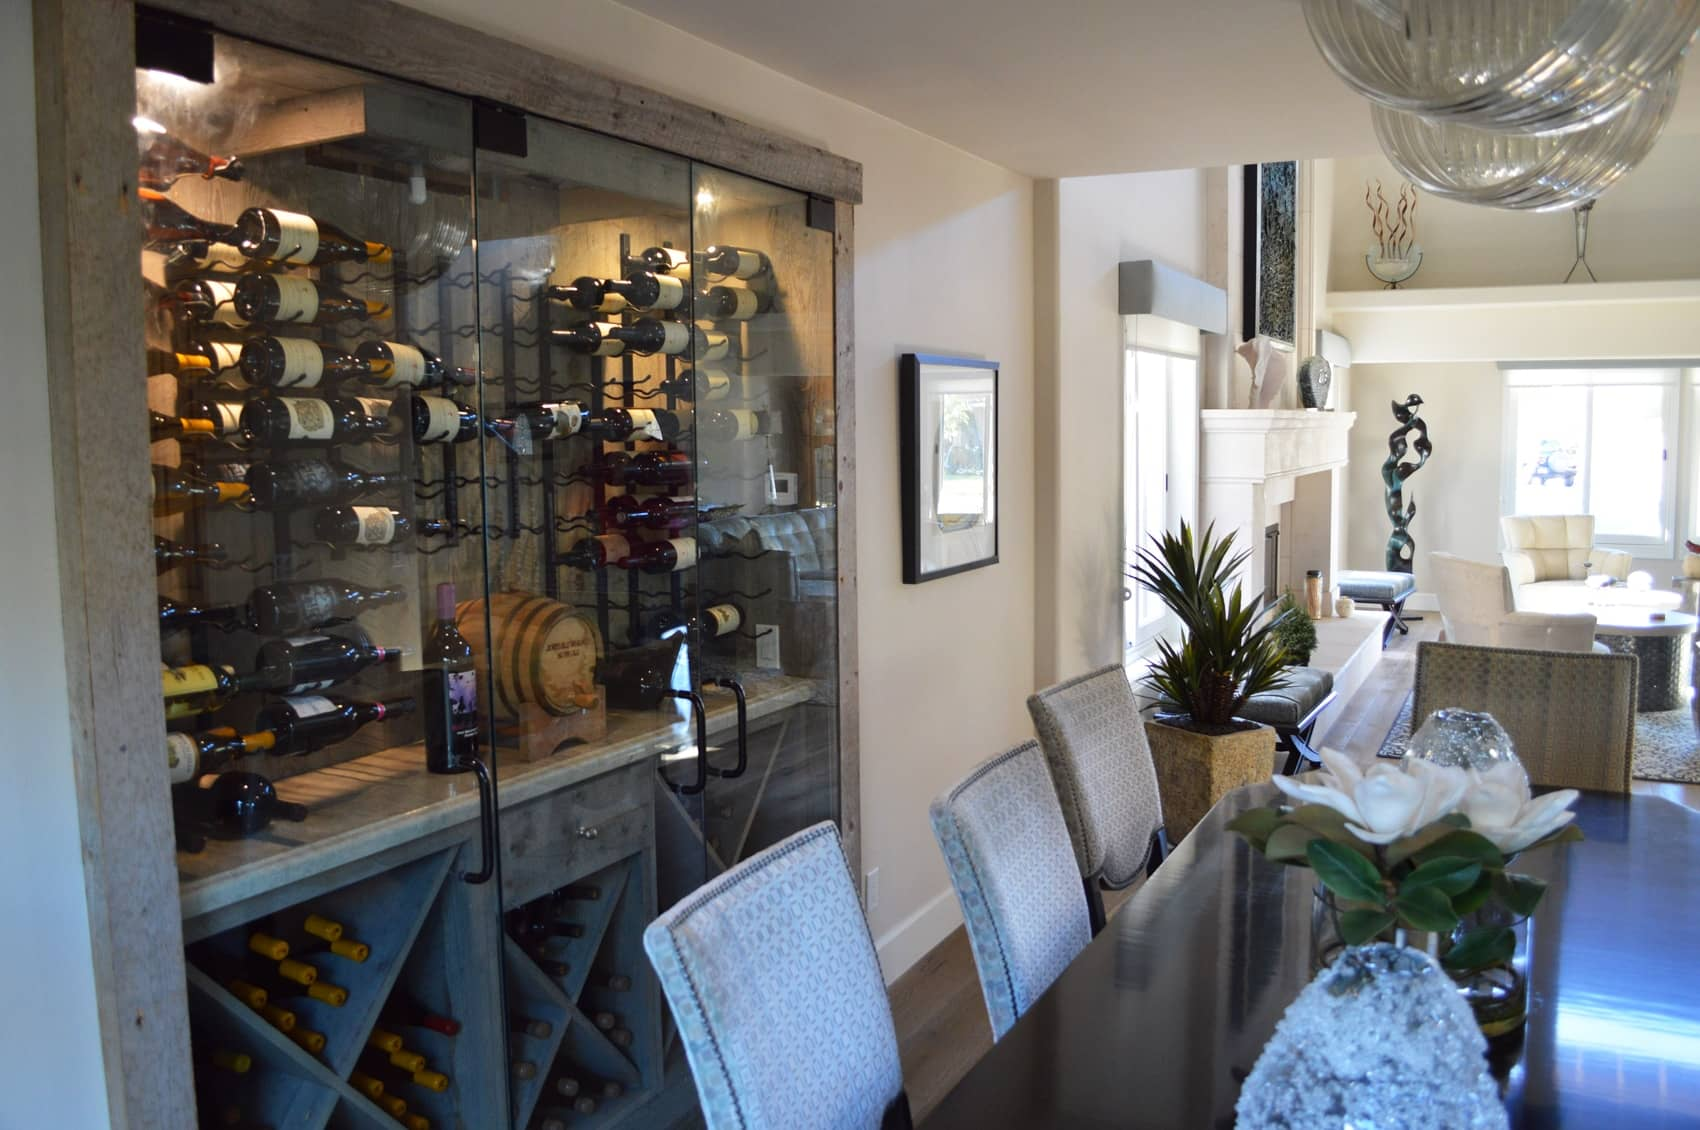 A perfect balance of wooden and metal racks harmonizes this transitional wine cellar into an elegant piece of art.